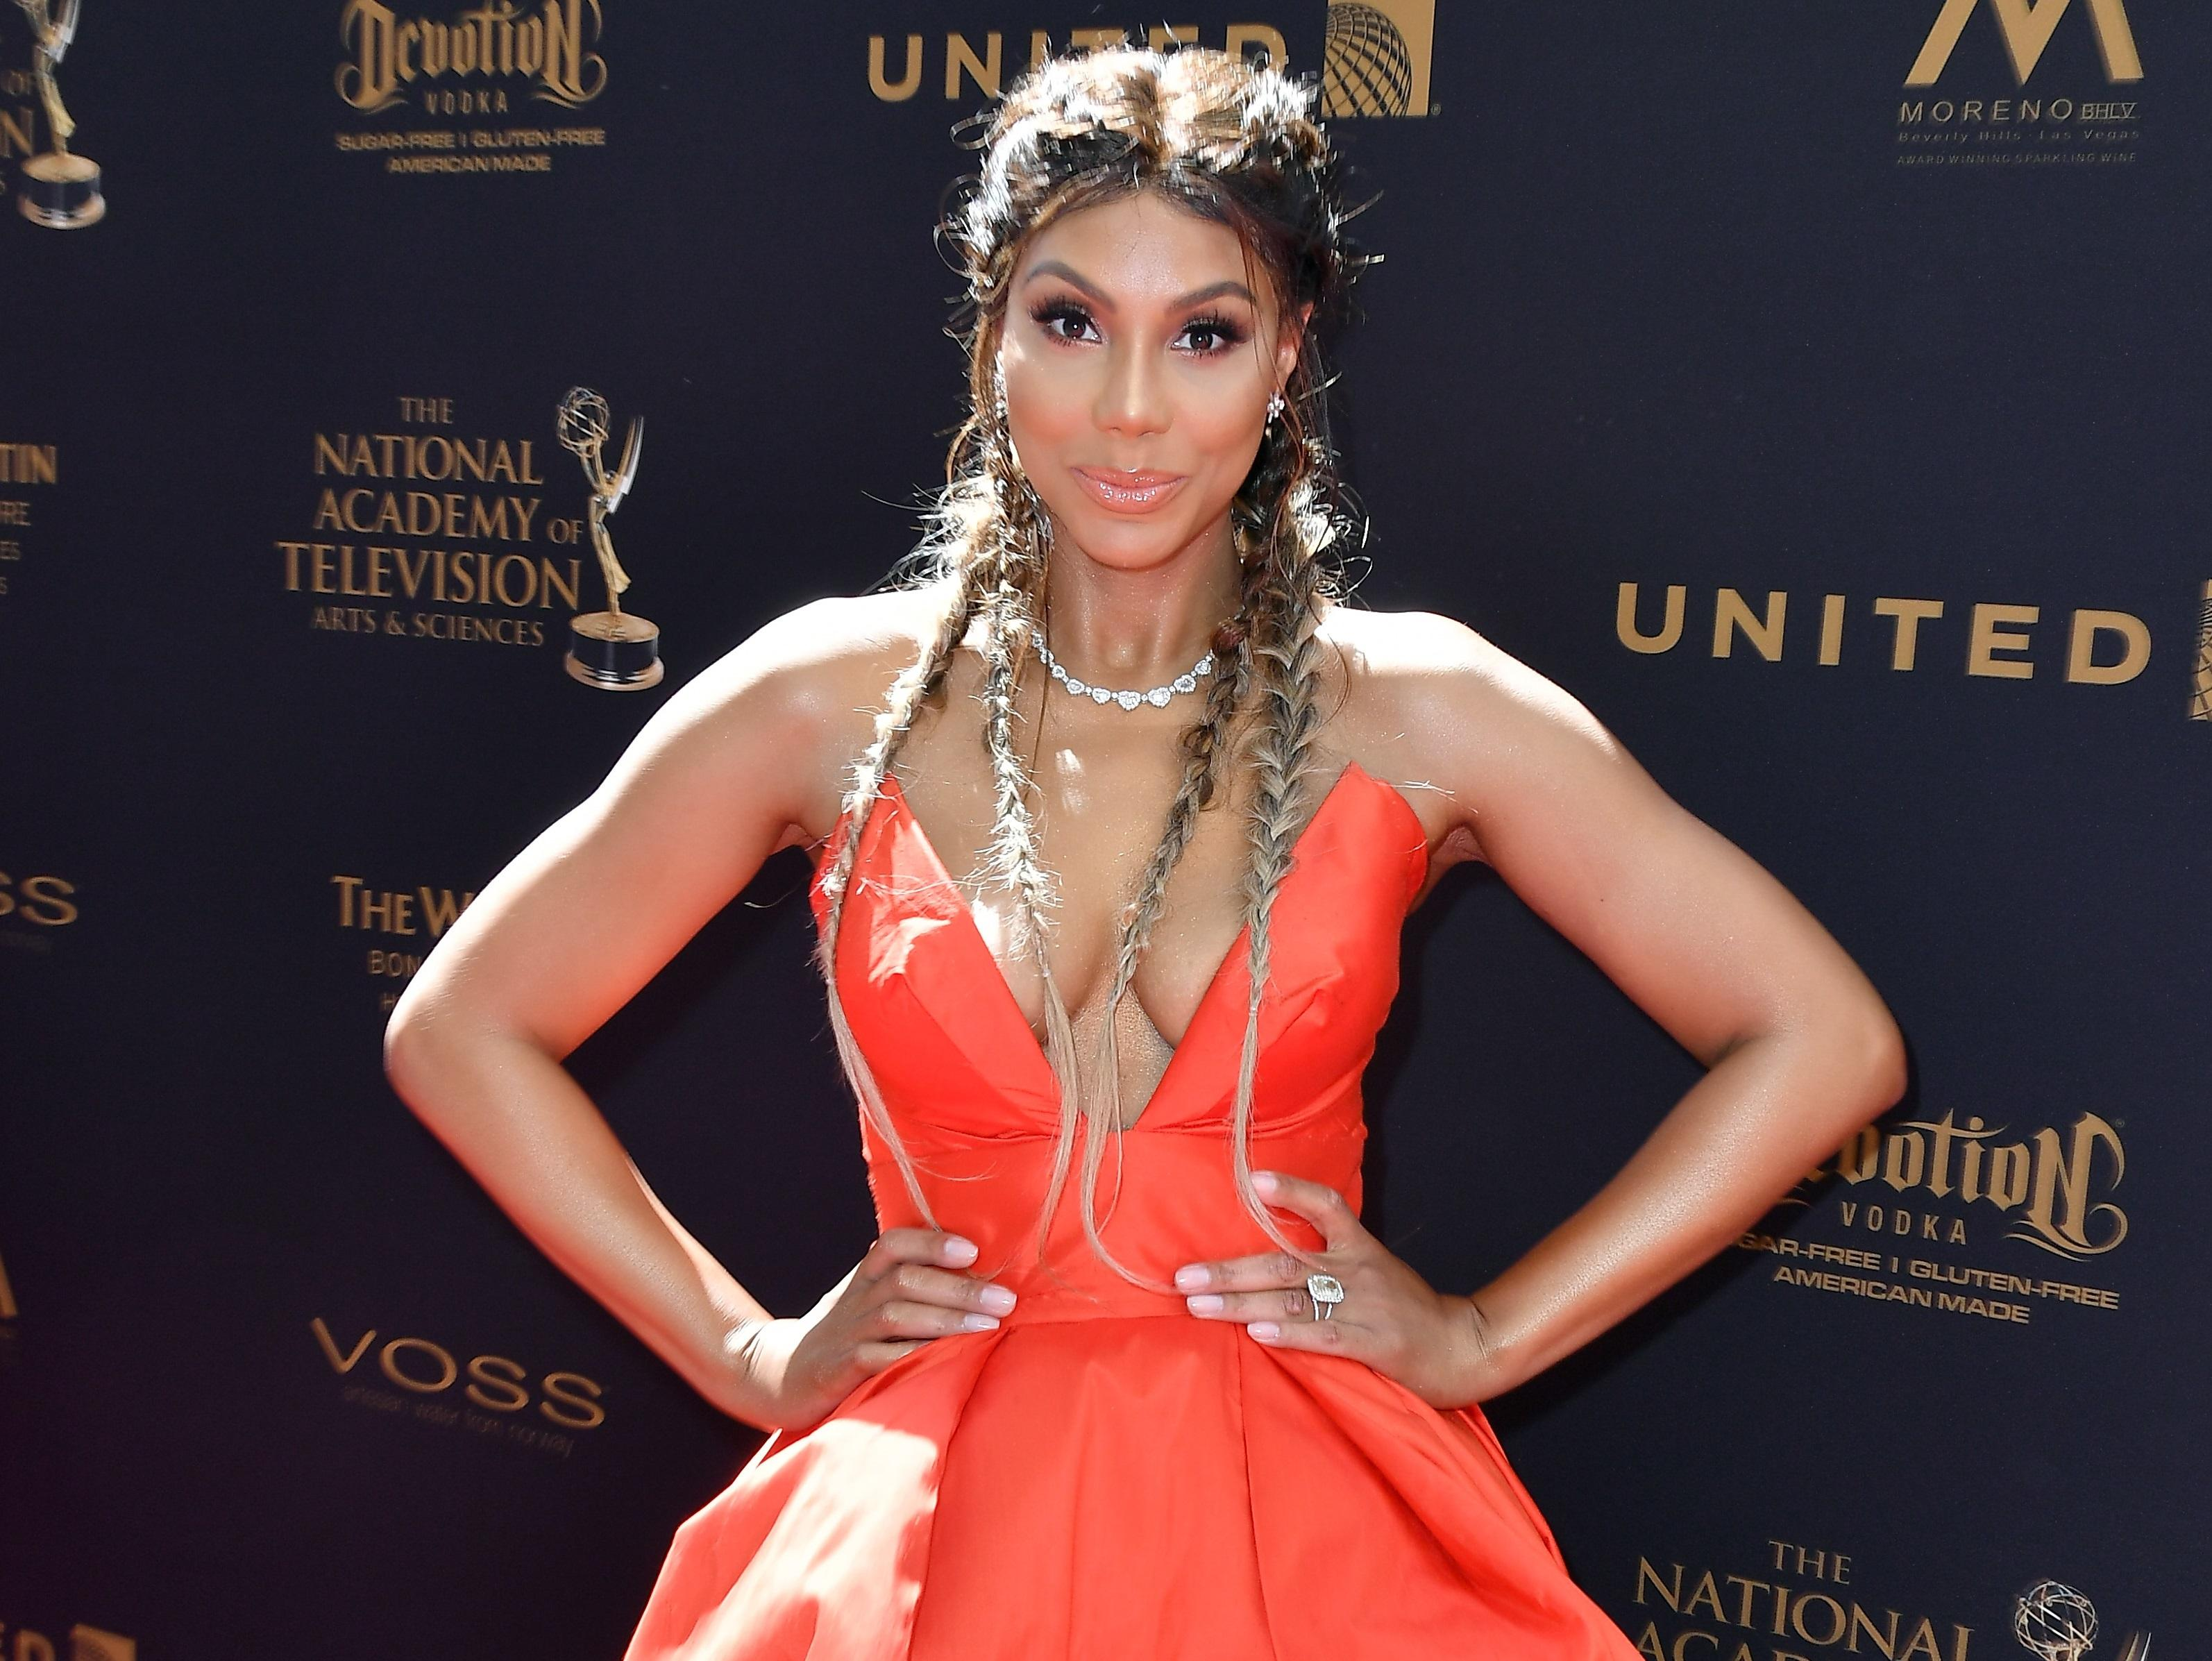 Tamar Braxton The Real fired